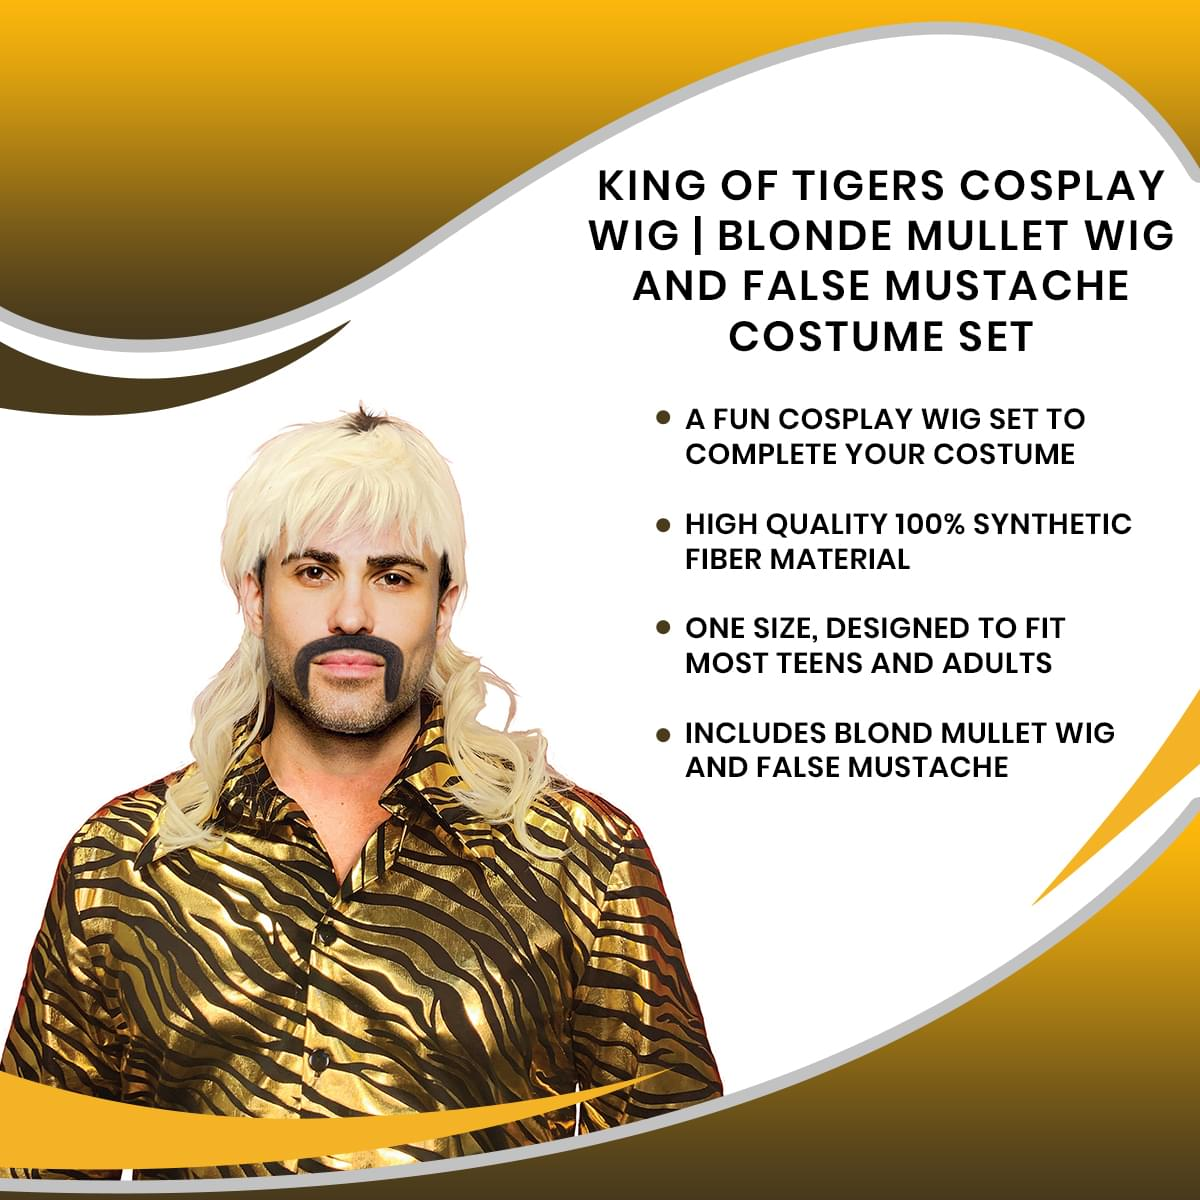 King of Tigers Cosplay Wig | Blonde Mullet Wig and False Mustache Costume Set